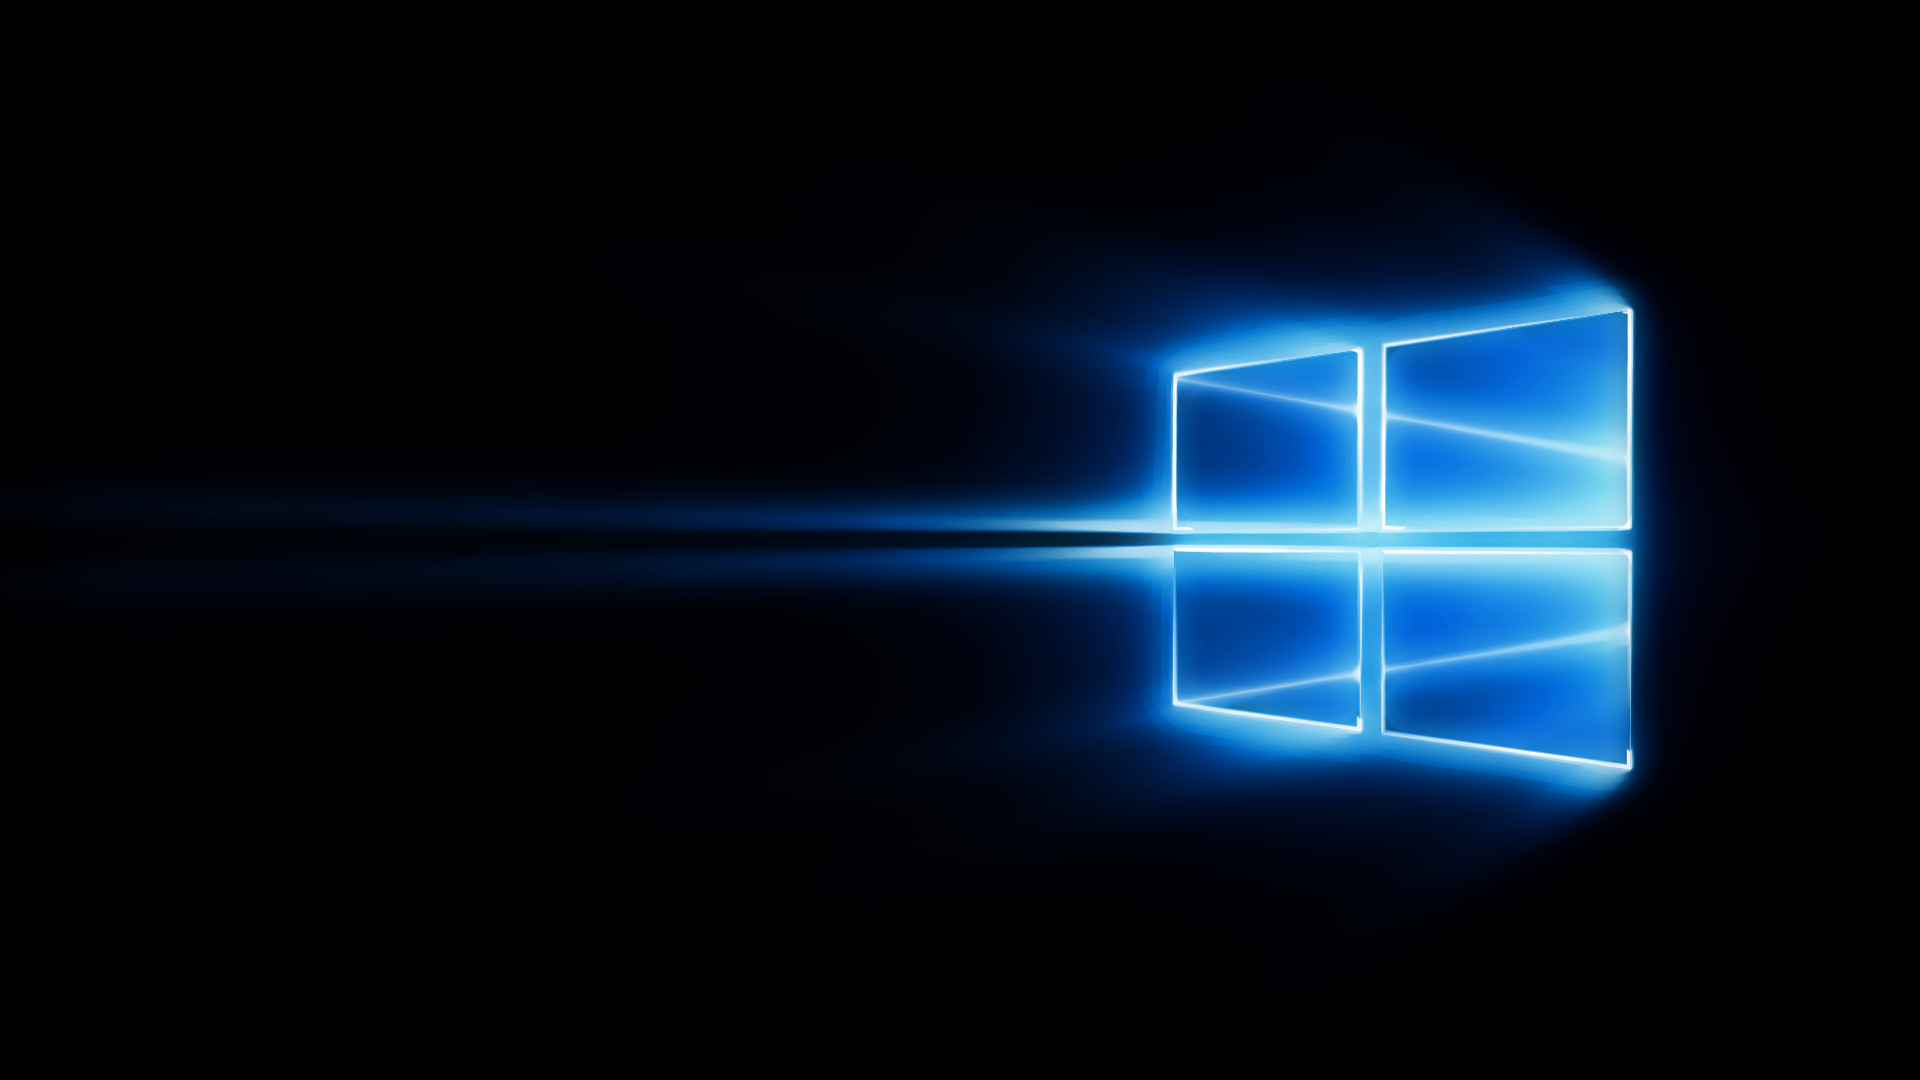 Microsoft Wallpaper Windows 10 75 Images